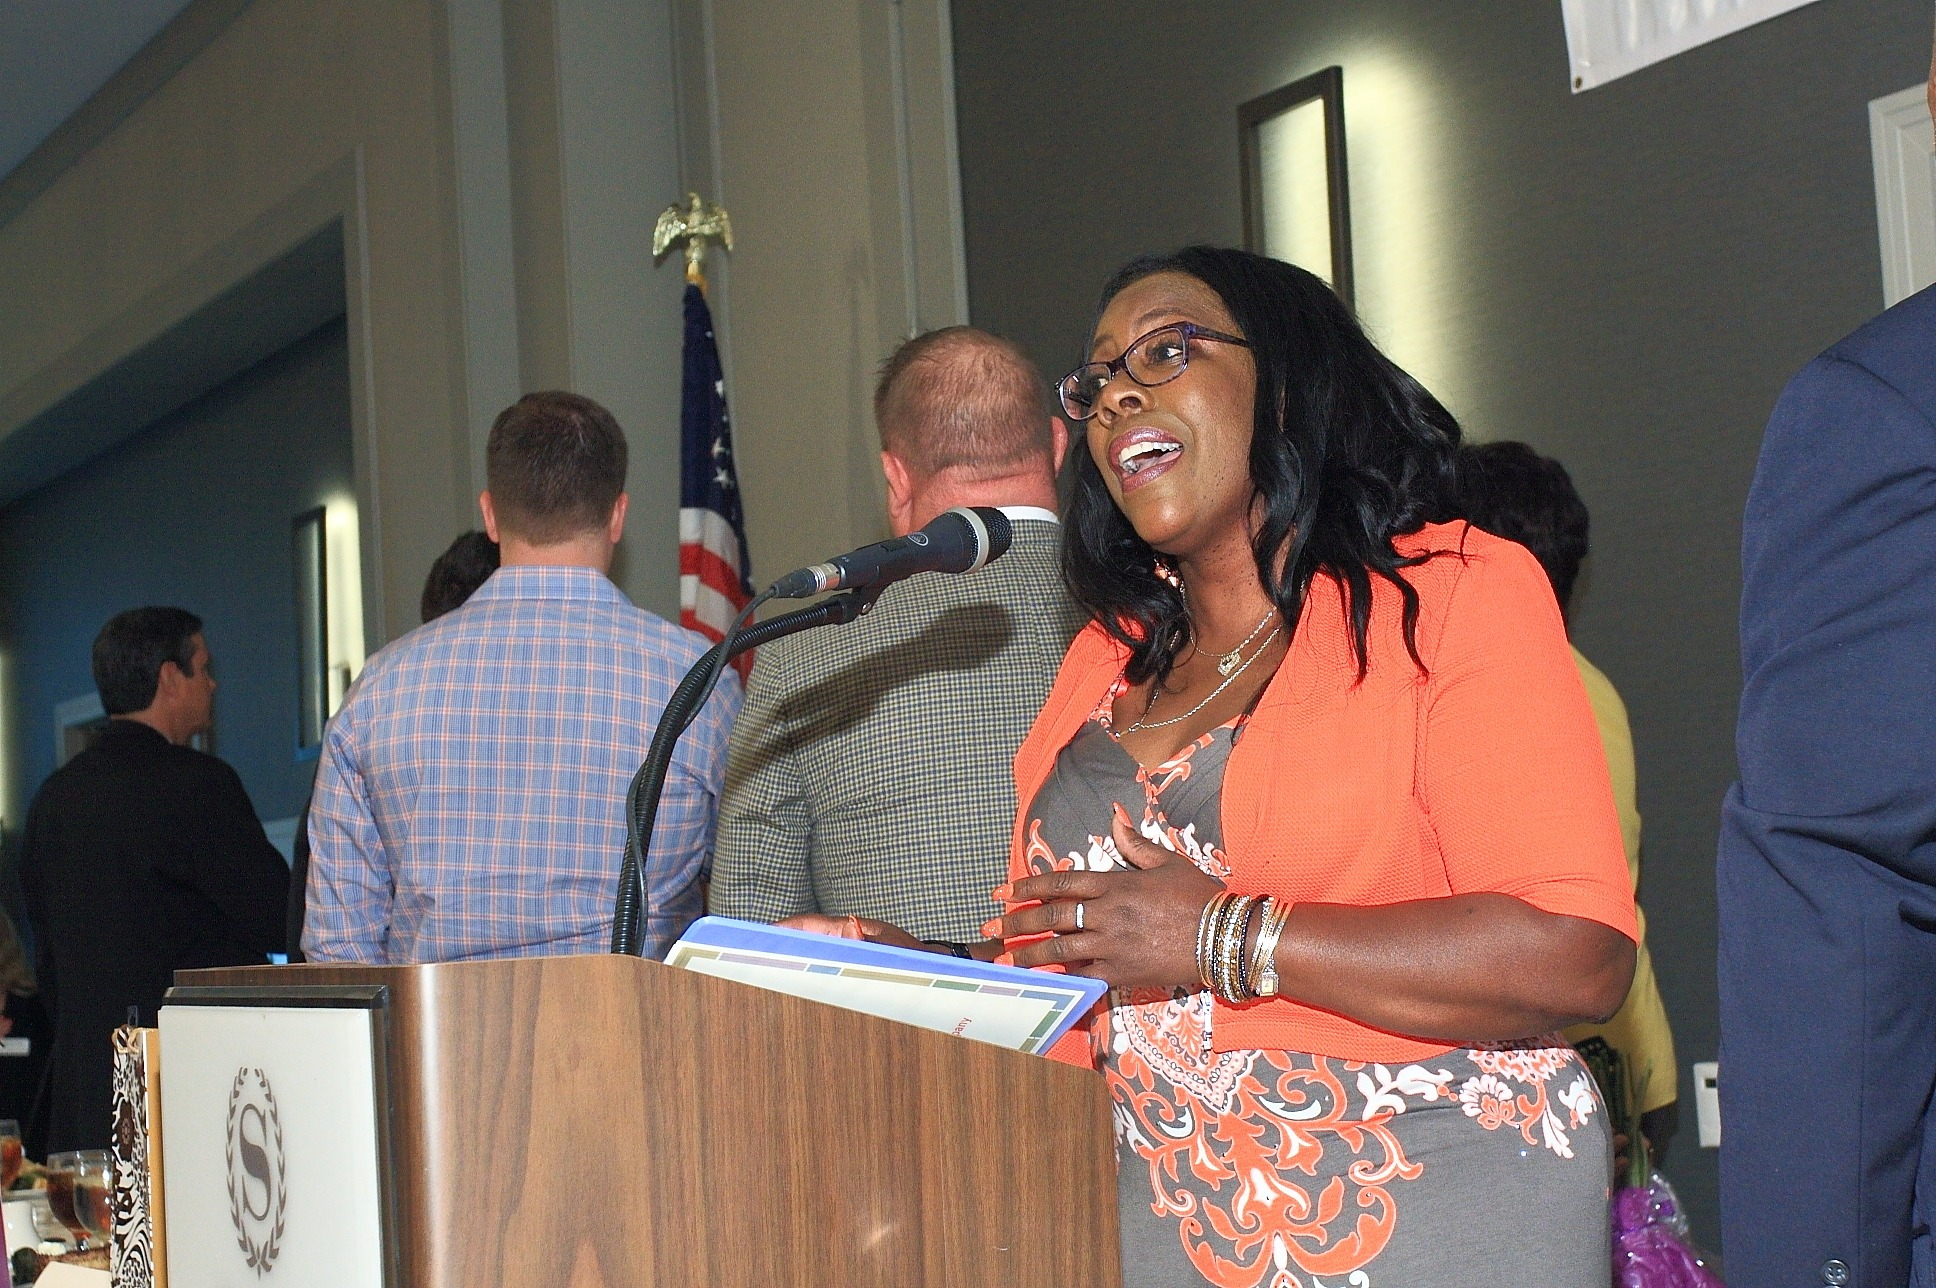 Angela Fraser with California Avocado Commission sings the National Anthem.